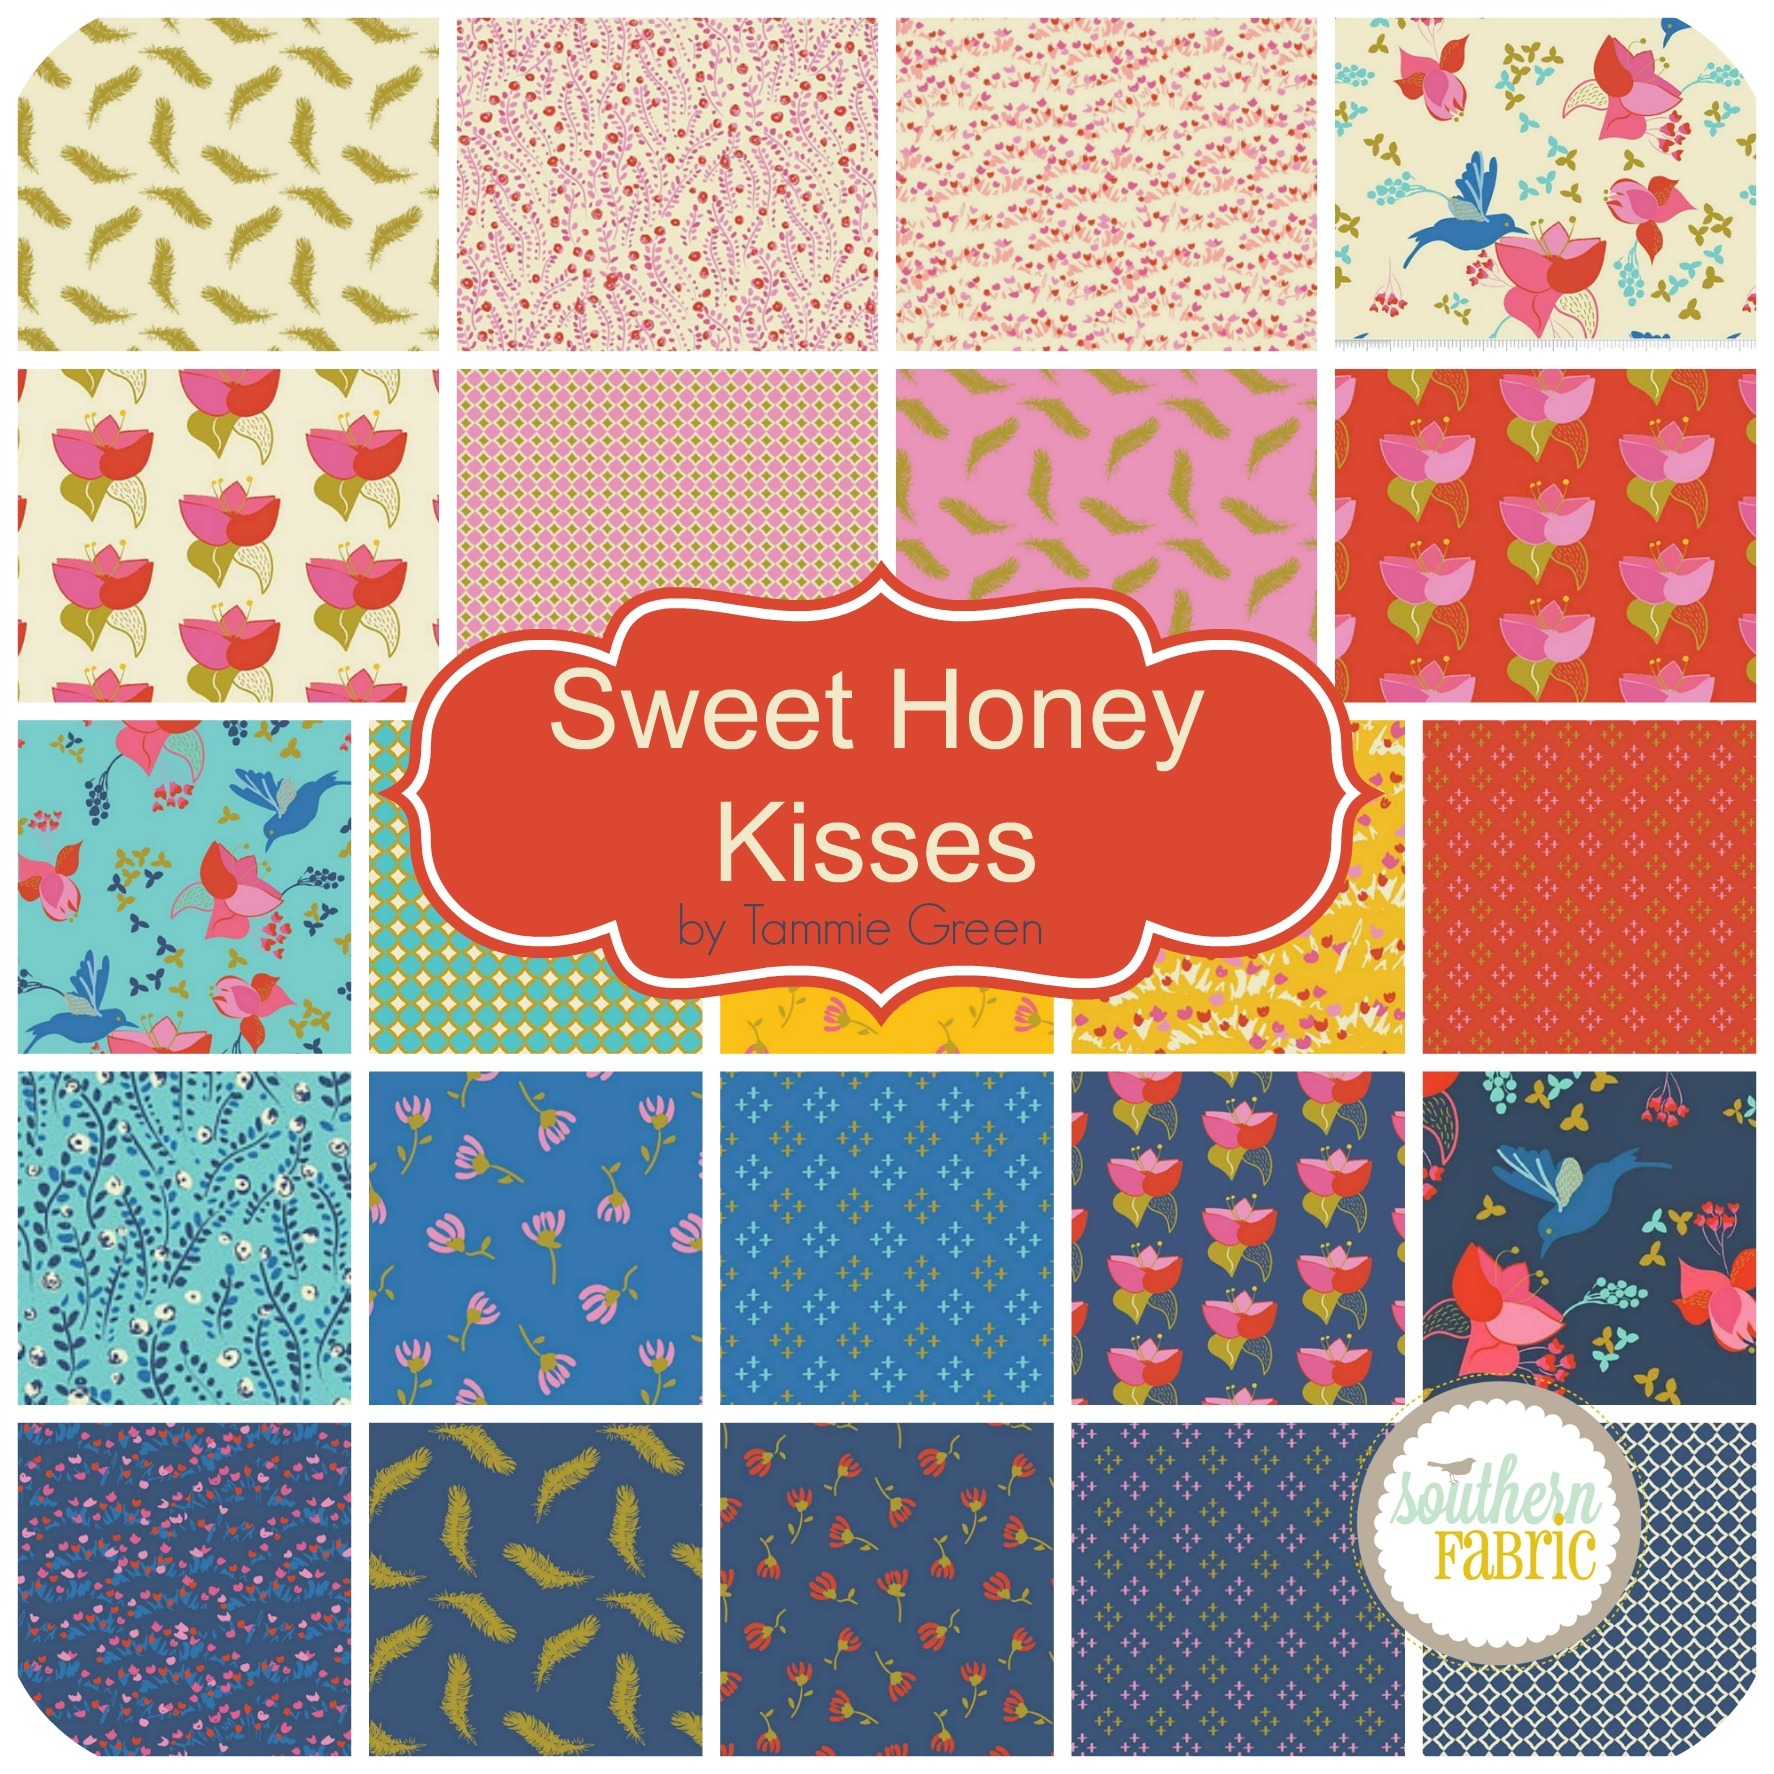 Sweet Honey Kisses by Tammie Green